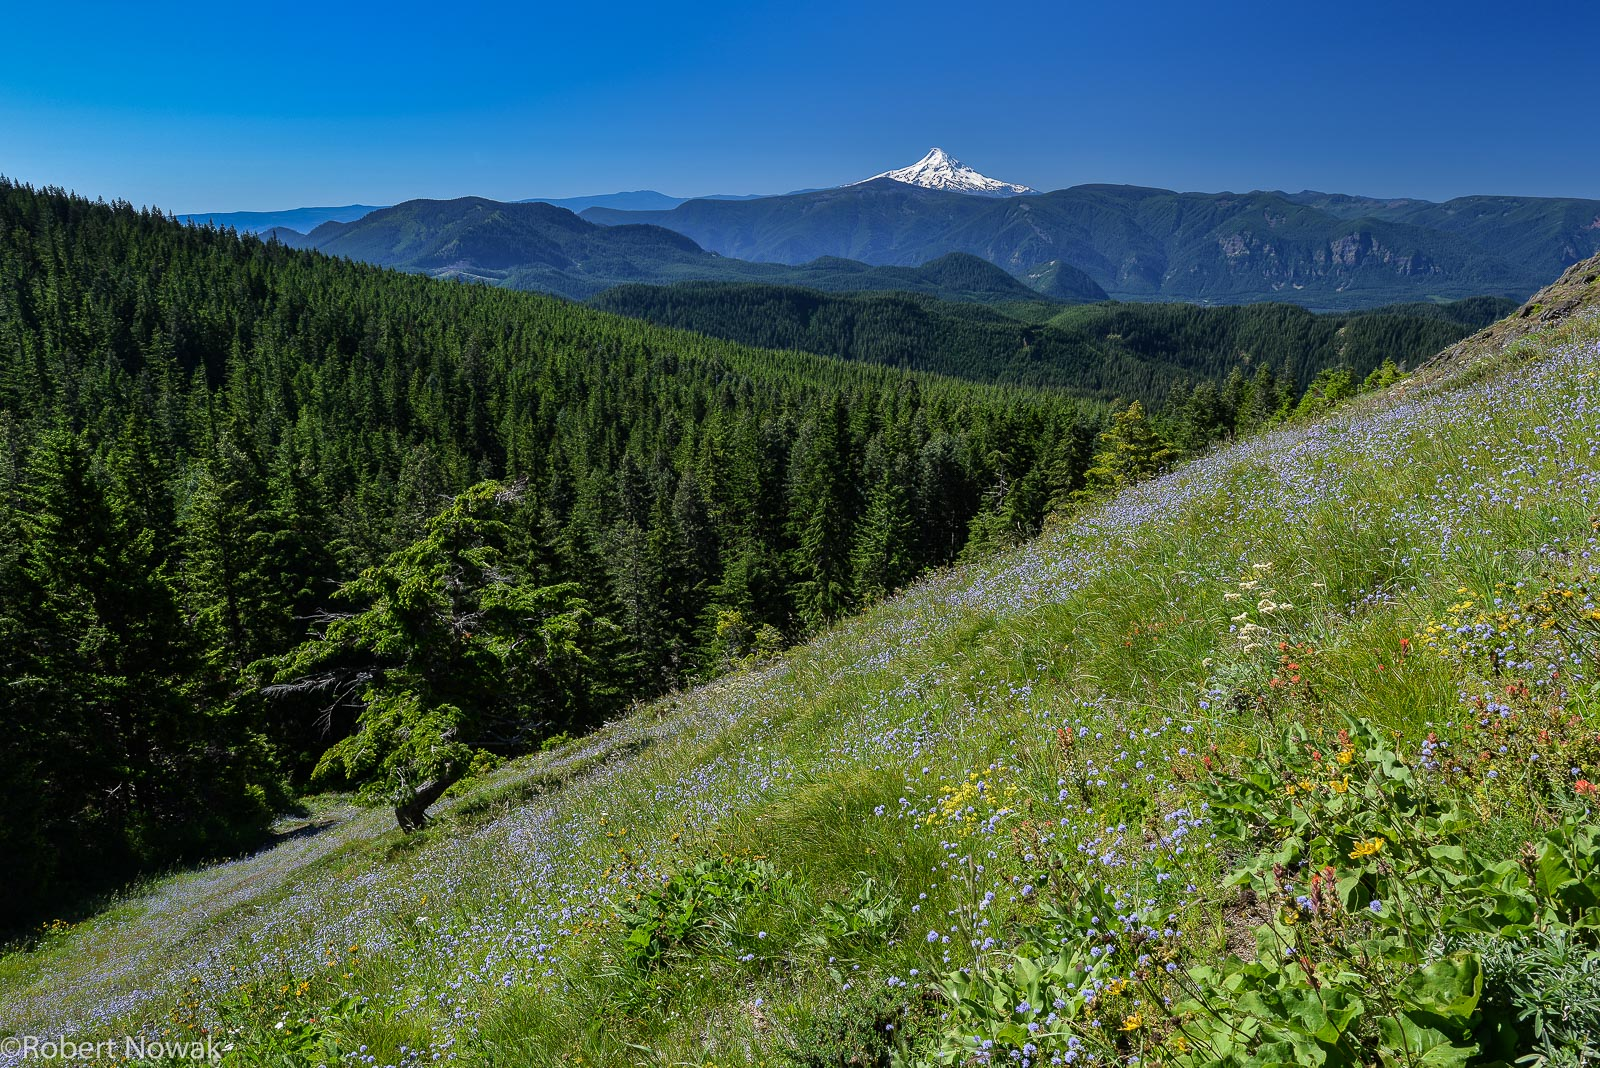 Looking south towards Mt. Hood from the slopes of Grassy Knoll.